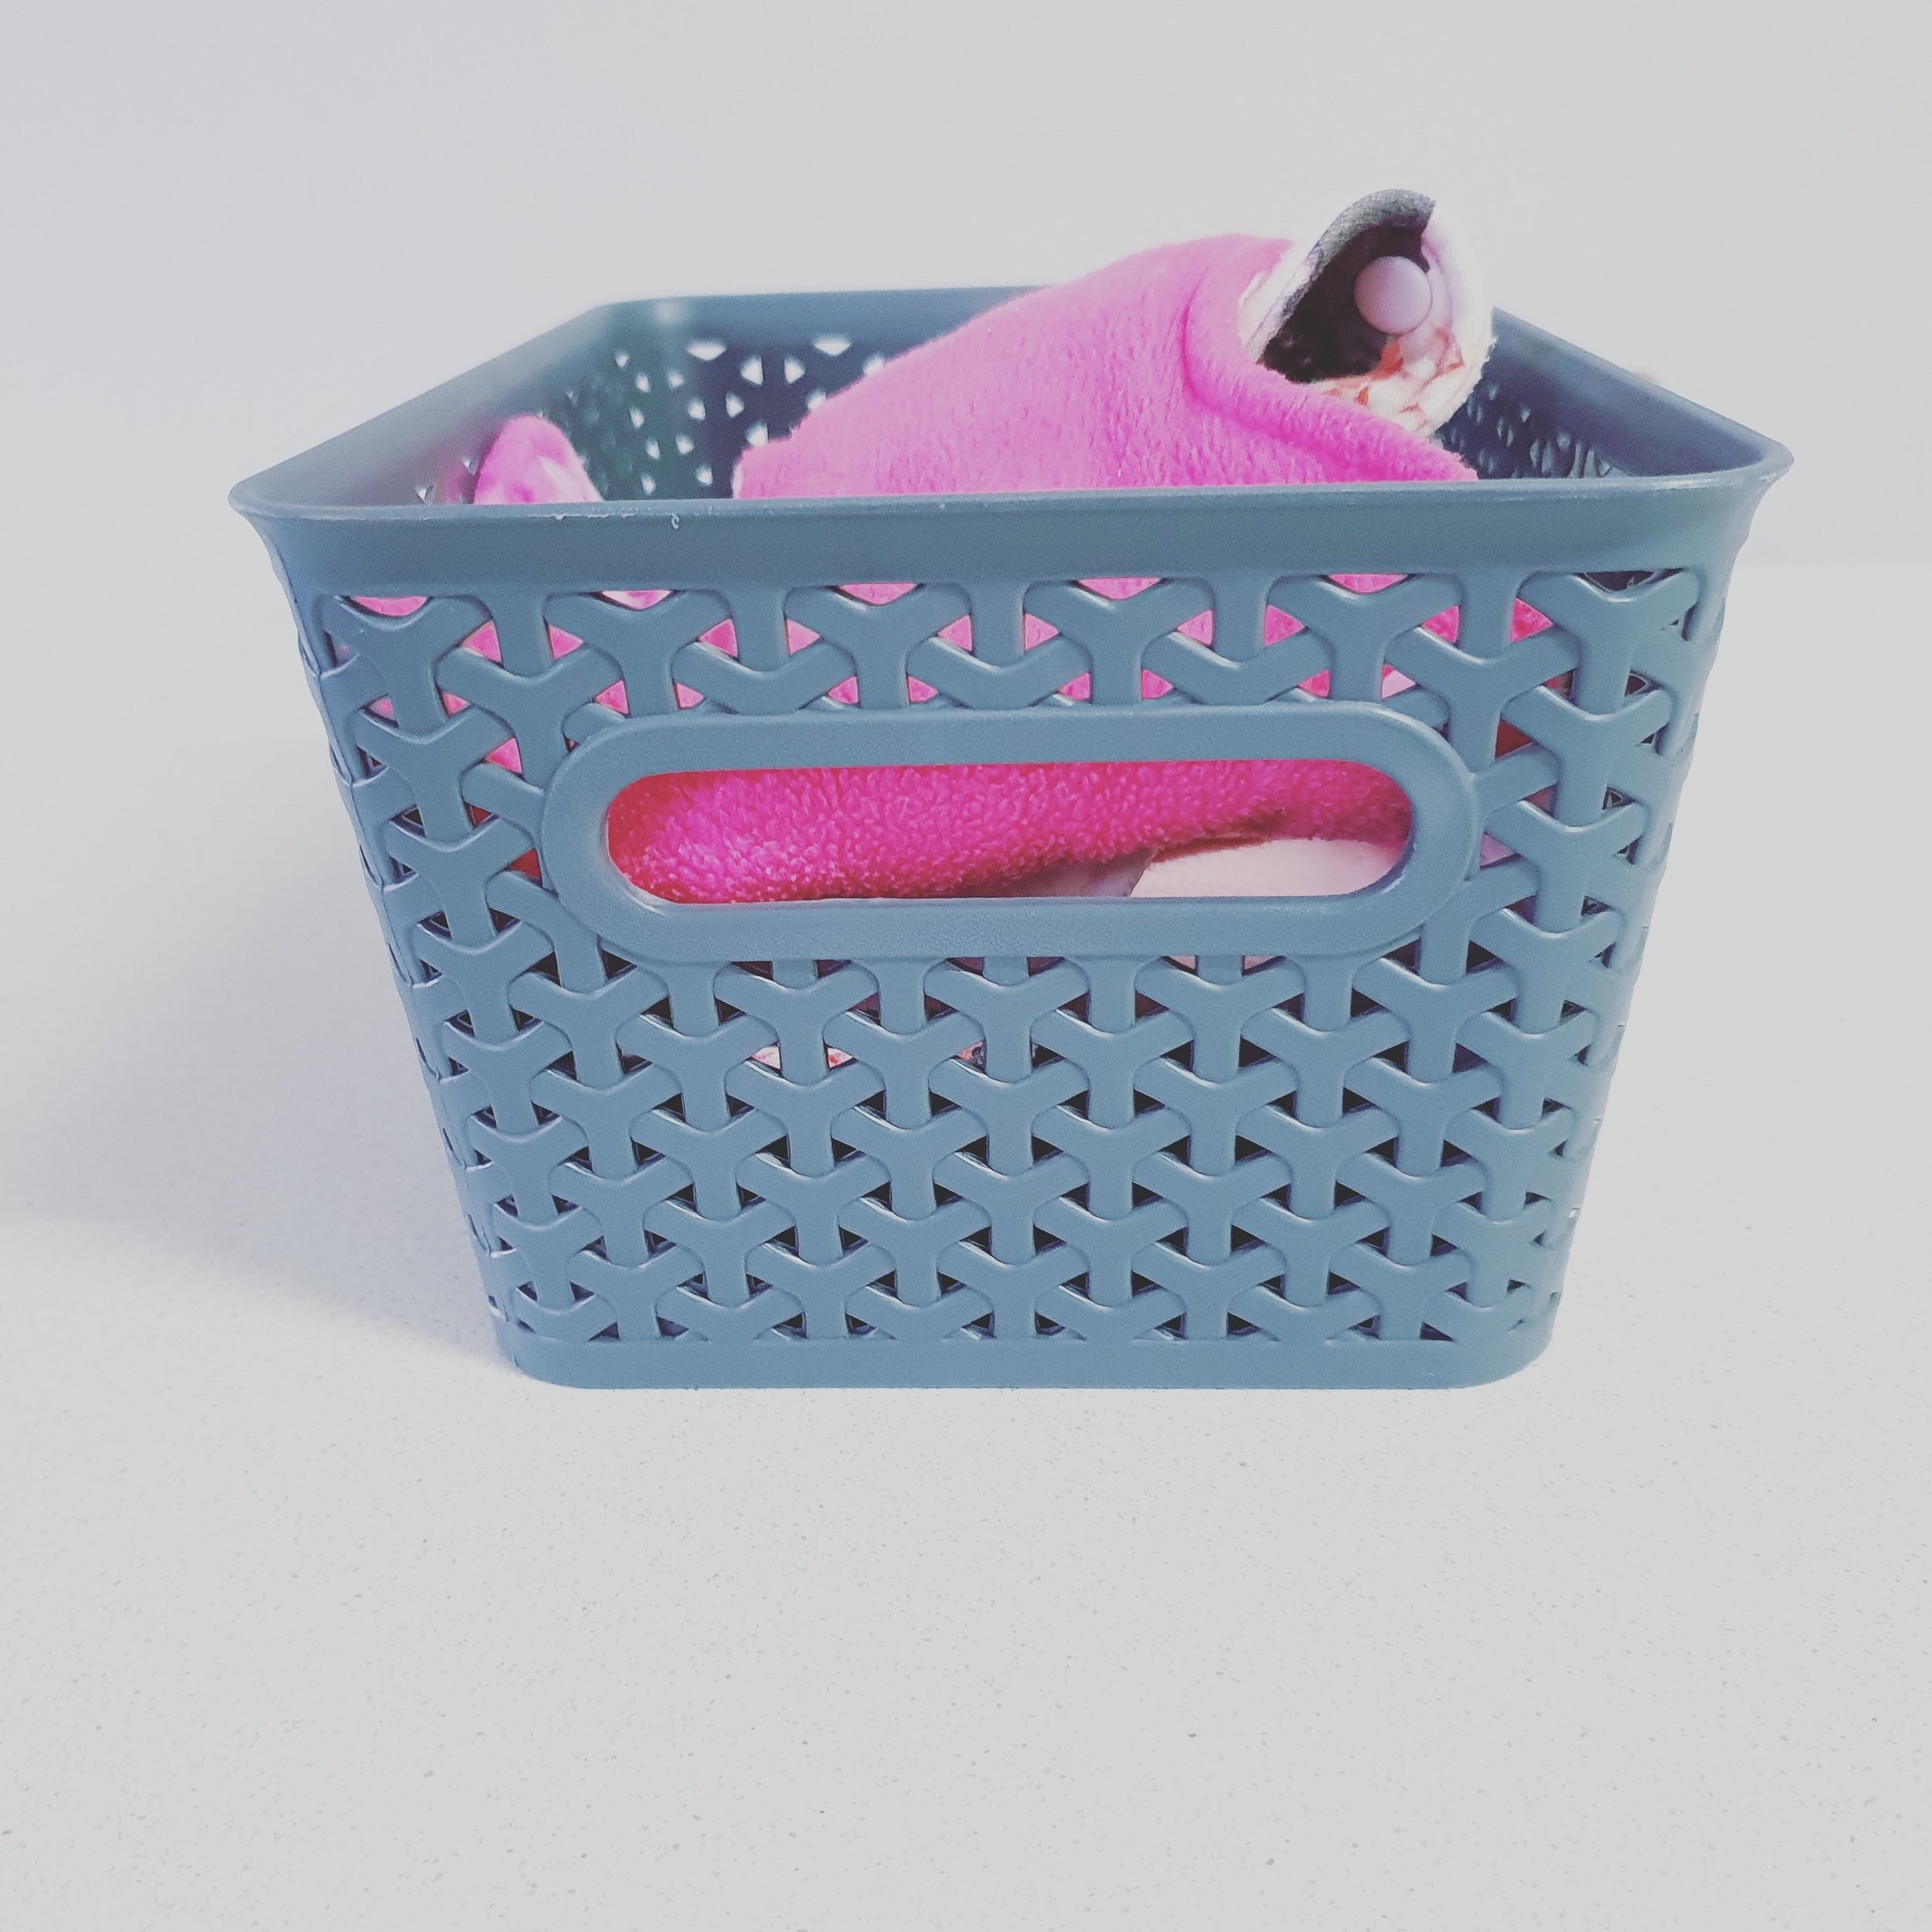 Basket for storing used pads